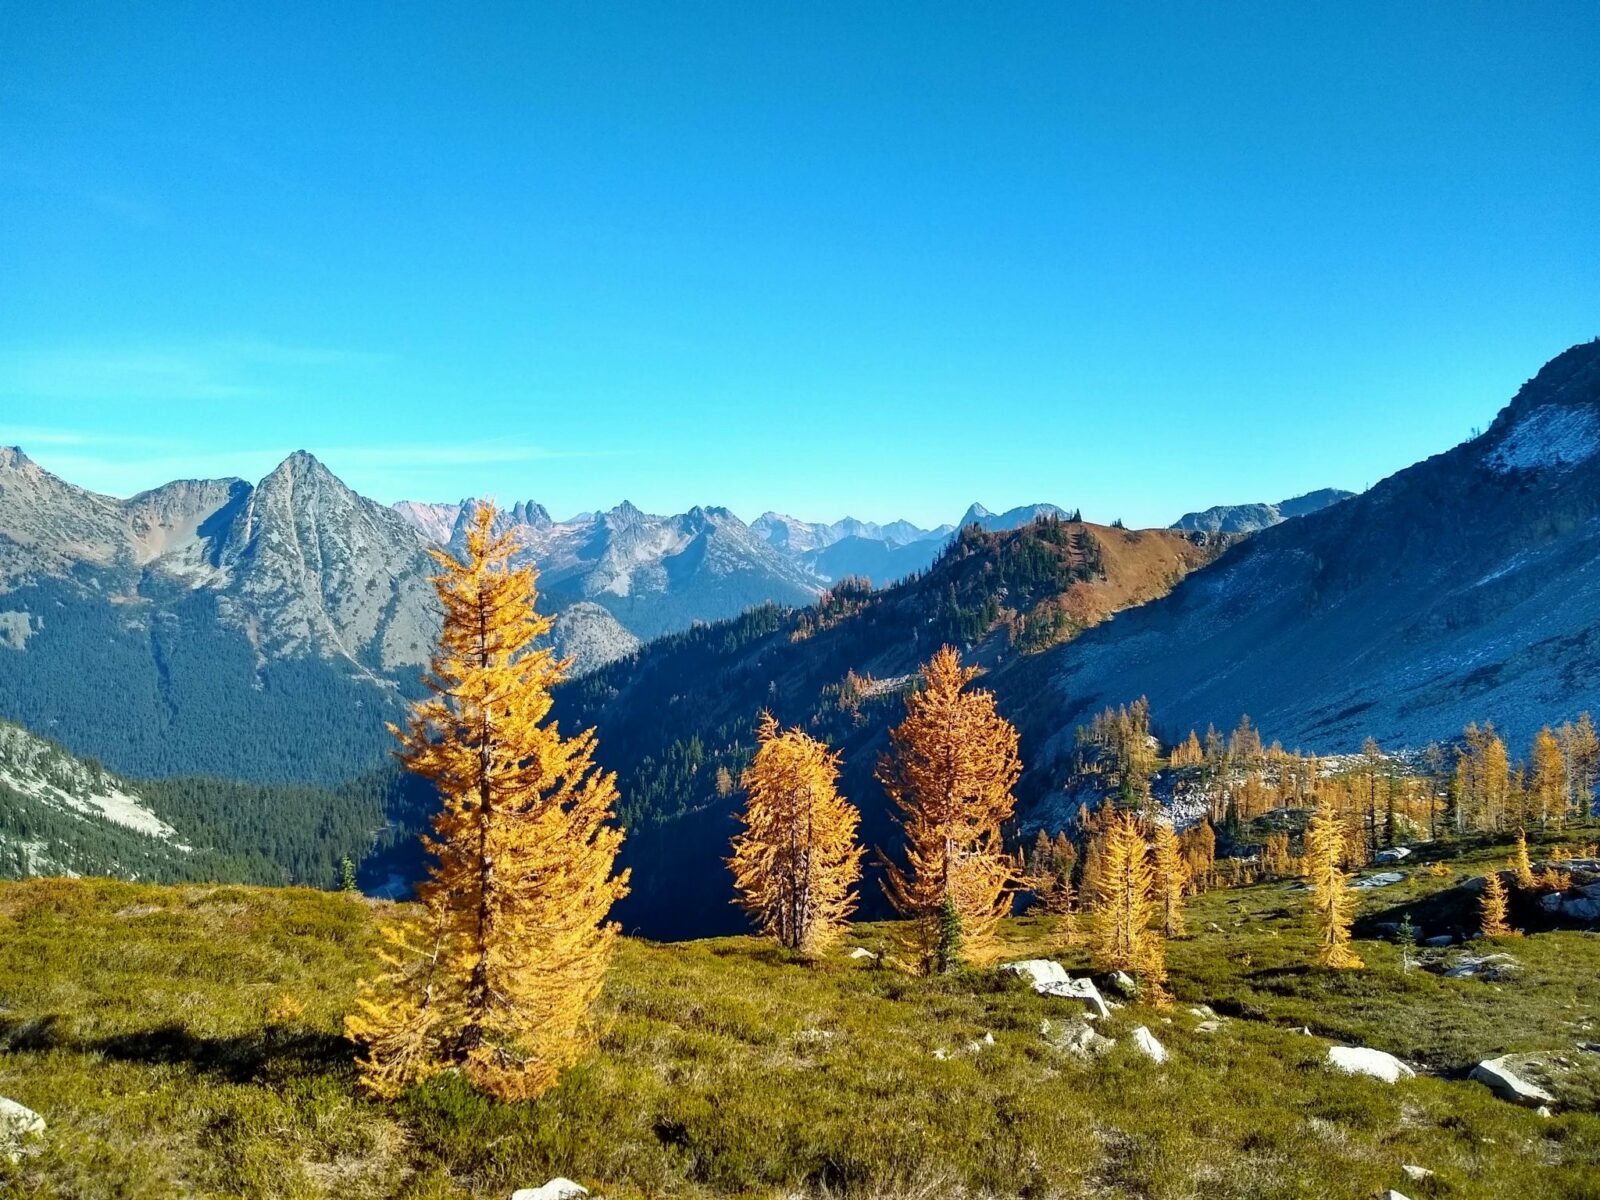 Golden larch trees are dispersed in a green meadow in the foreground on the maple pass loop. In the distance are high mountains against a blue sky.